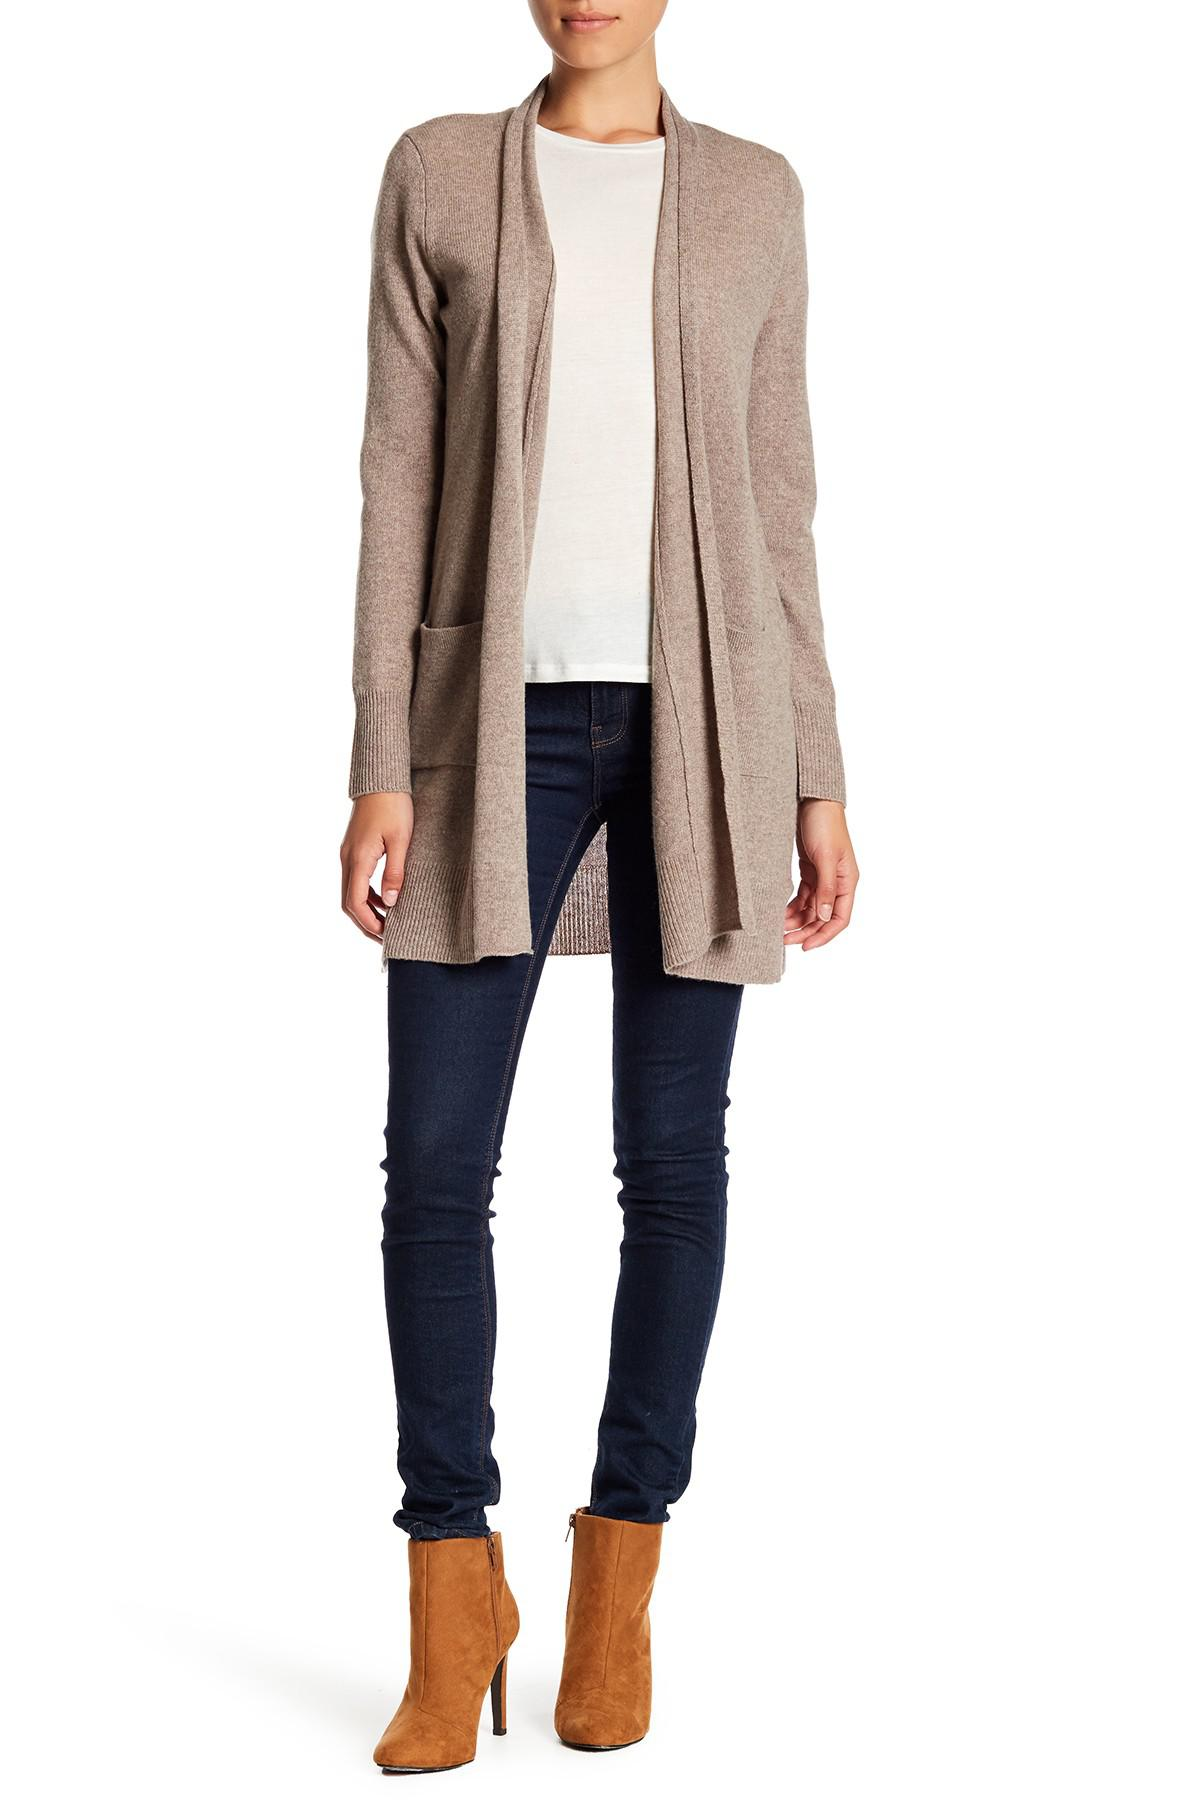 Philosophy apparel Cashmere Duster Cardigan (petite) in Natural | Lyst